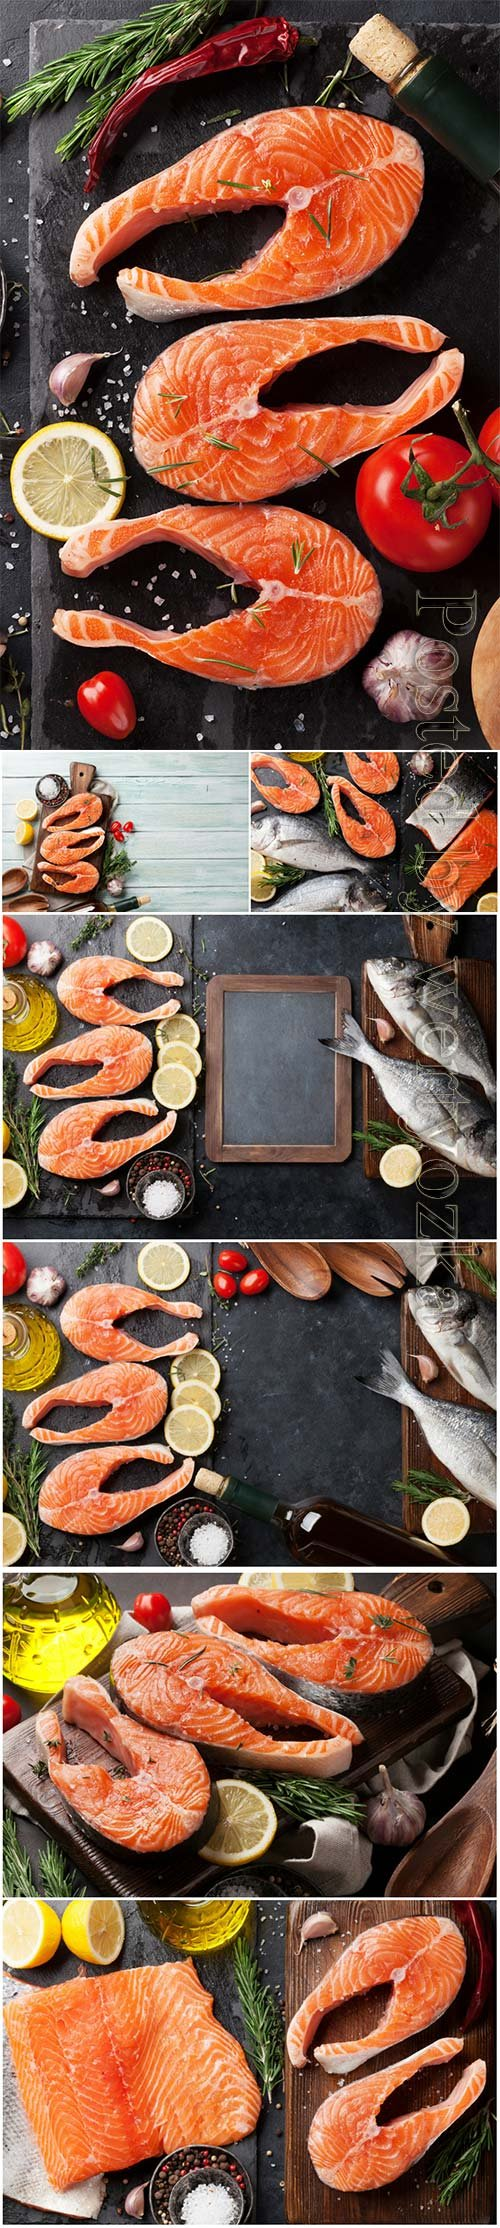 Raw salmon fish fillet beautiful stock photo